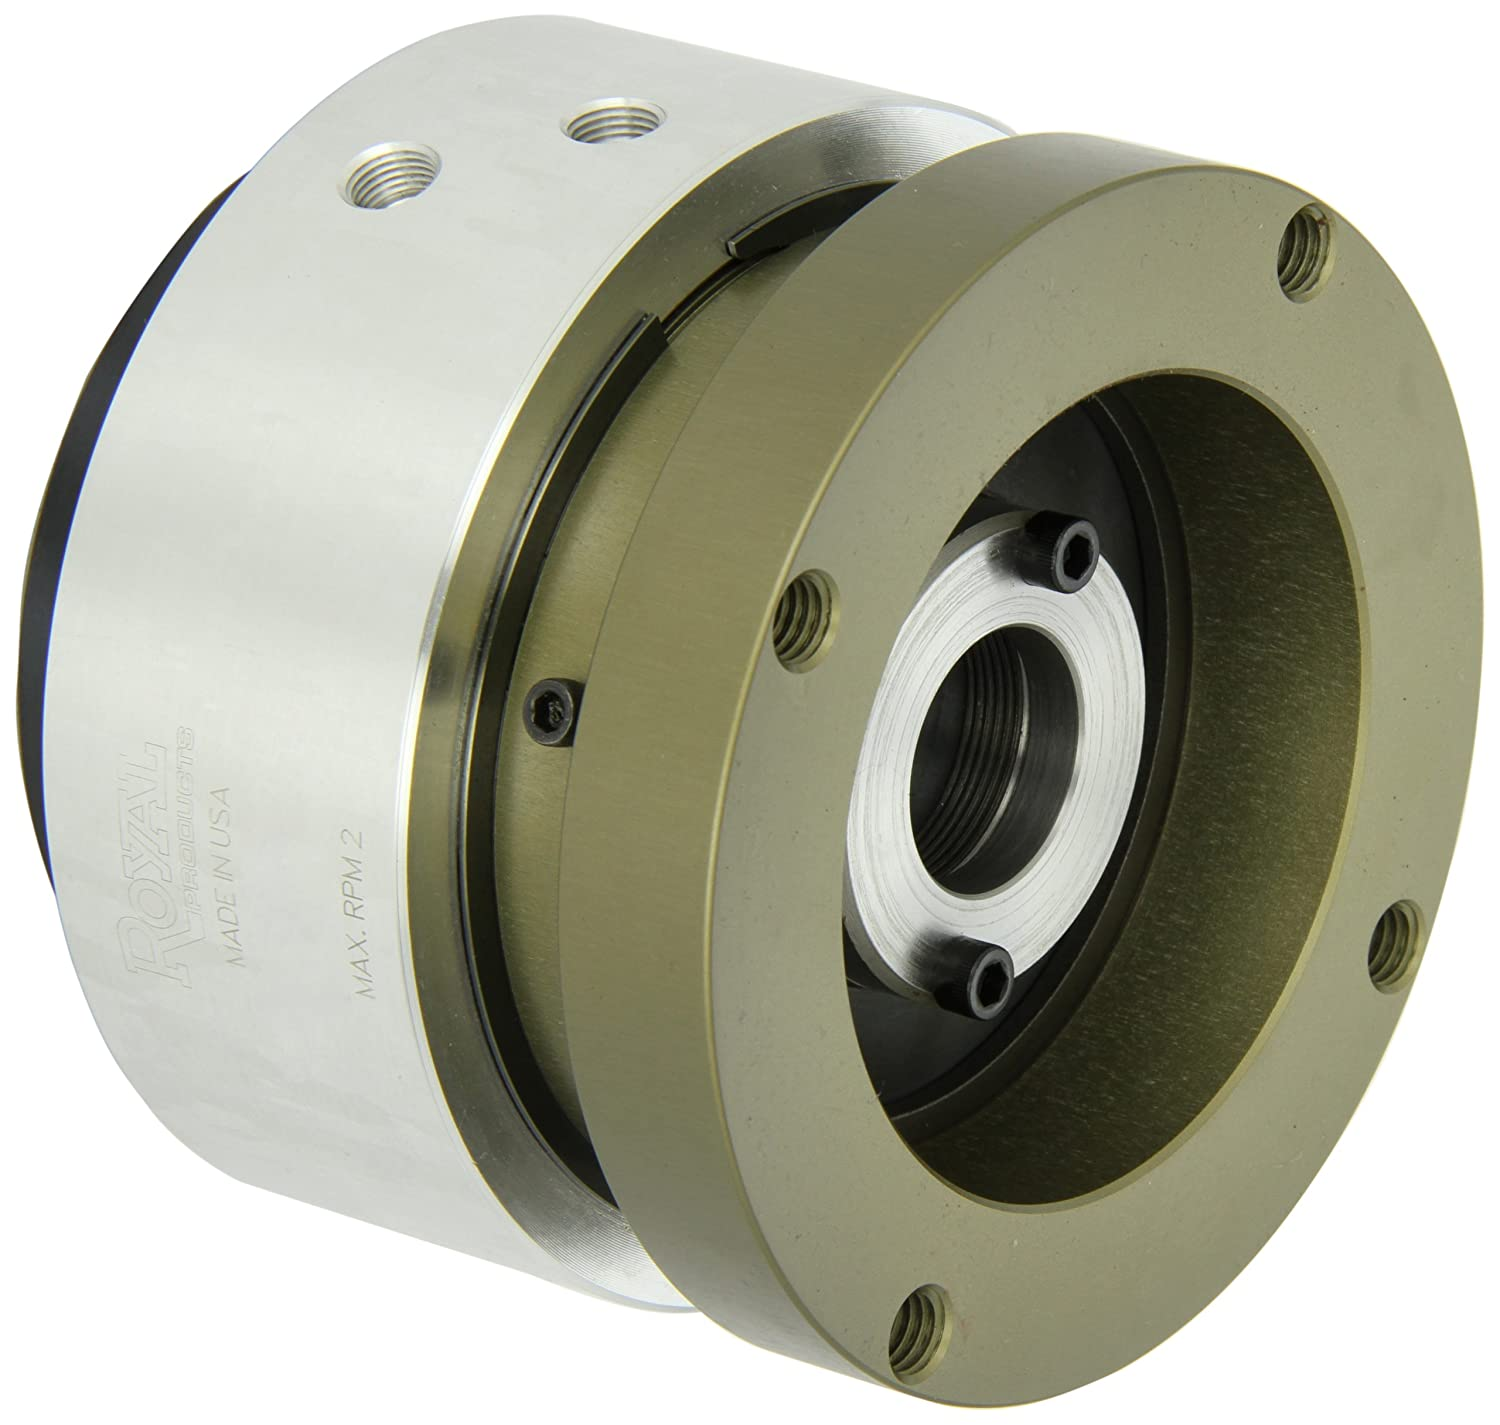 Royal 5C Collet Closer Pneumatic For Rotary Tables Welding Applications Workholding Collets Amazon Industrial Scientific